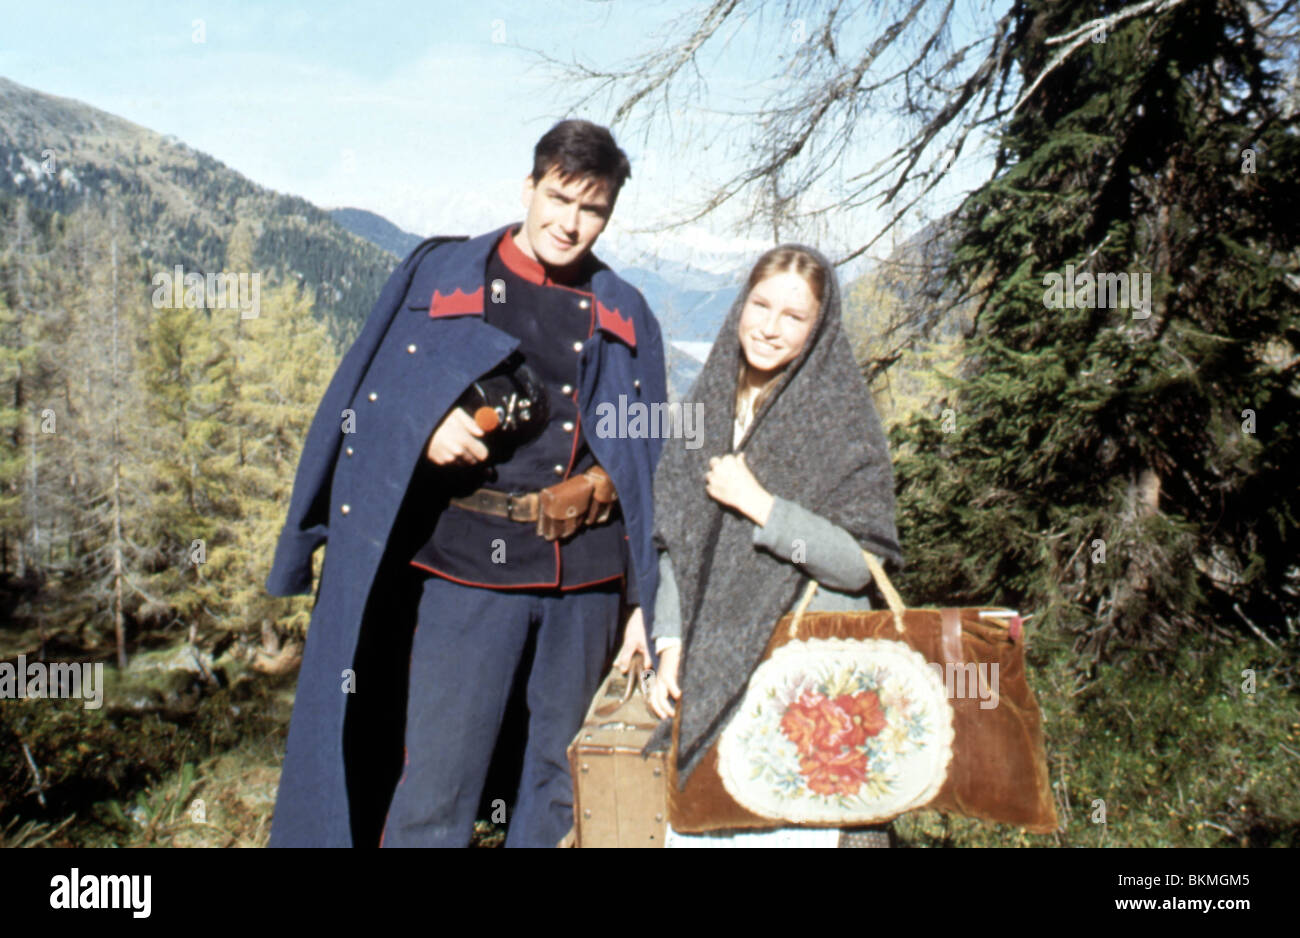 COURAGE MOUNTAIN (1989) CHARLIE SHEEN, JULIETTE CATON, CHRISTOPHER LEITCH (DIR) COMT 003 - Stock Image